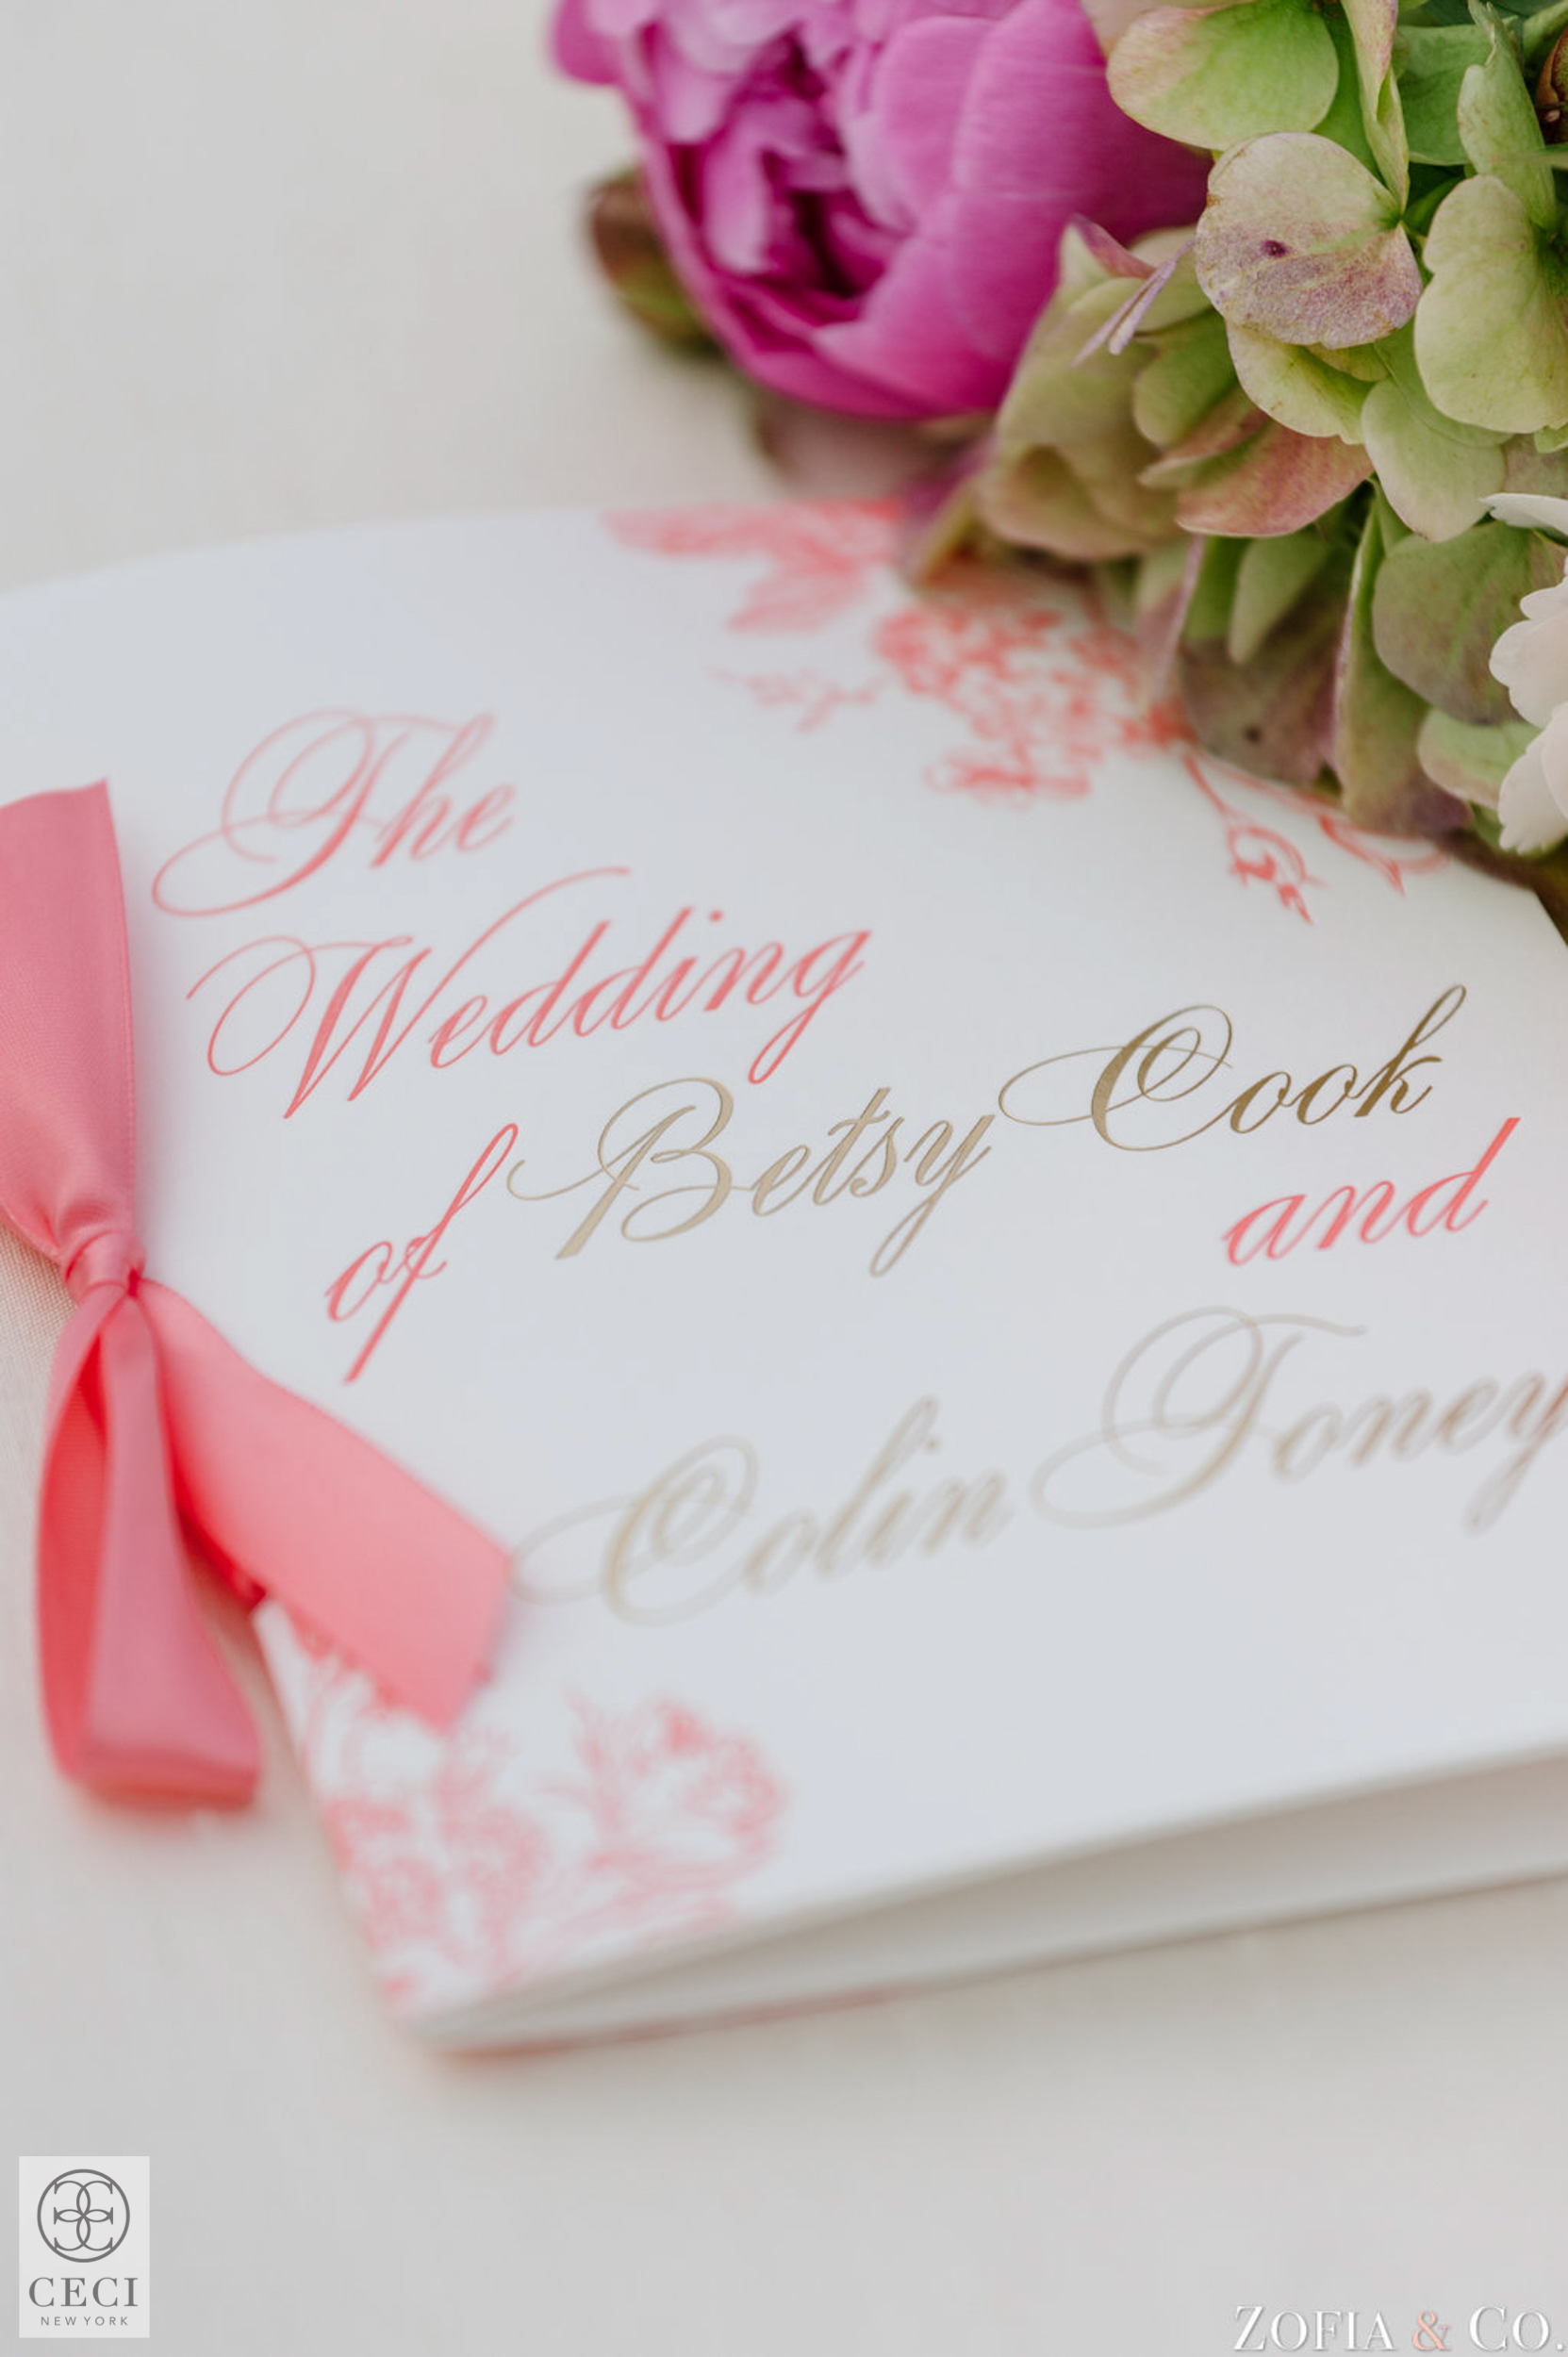 Ceci_New_York_Custom_Luxury_Wedding_LaserCut_Stationery_Personalized_Couture_Foil_Stamping_Black_Chic_-2 copy.jpg